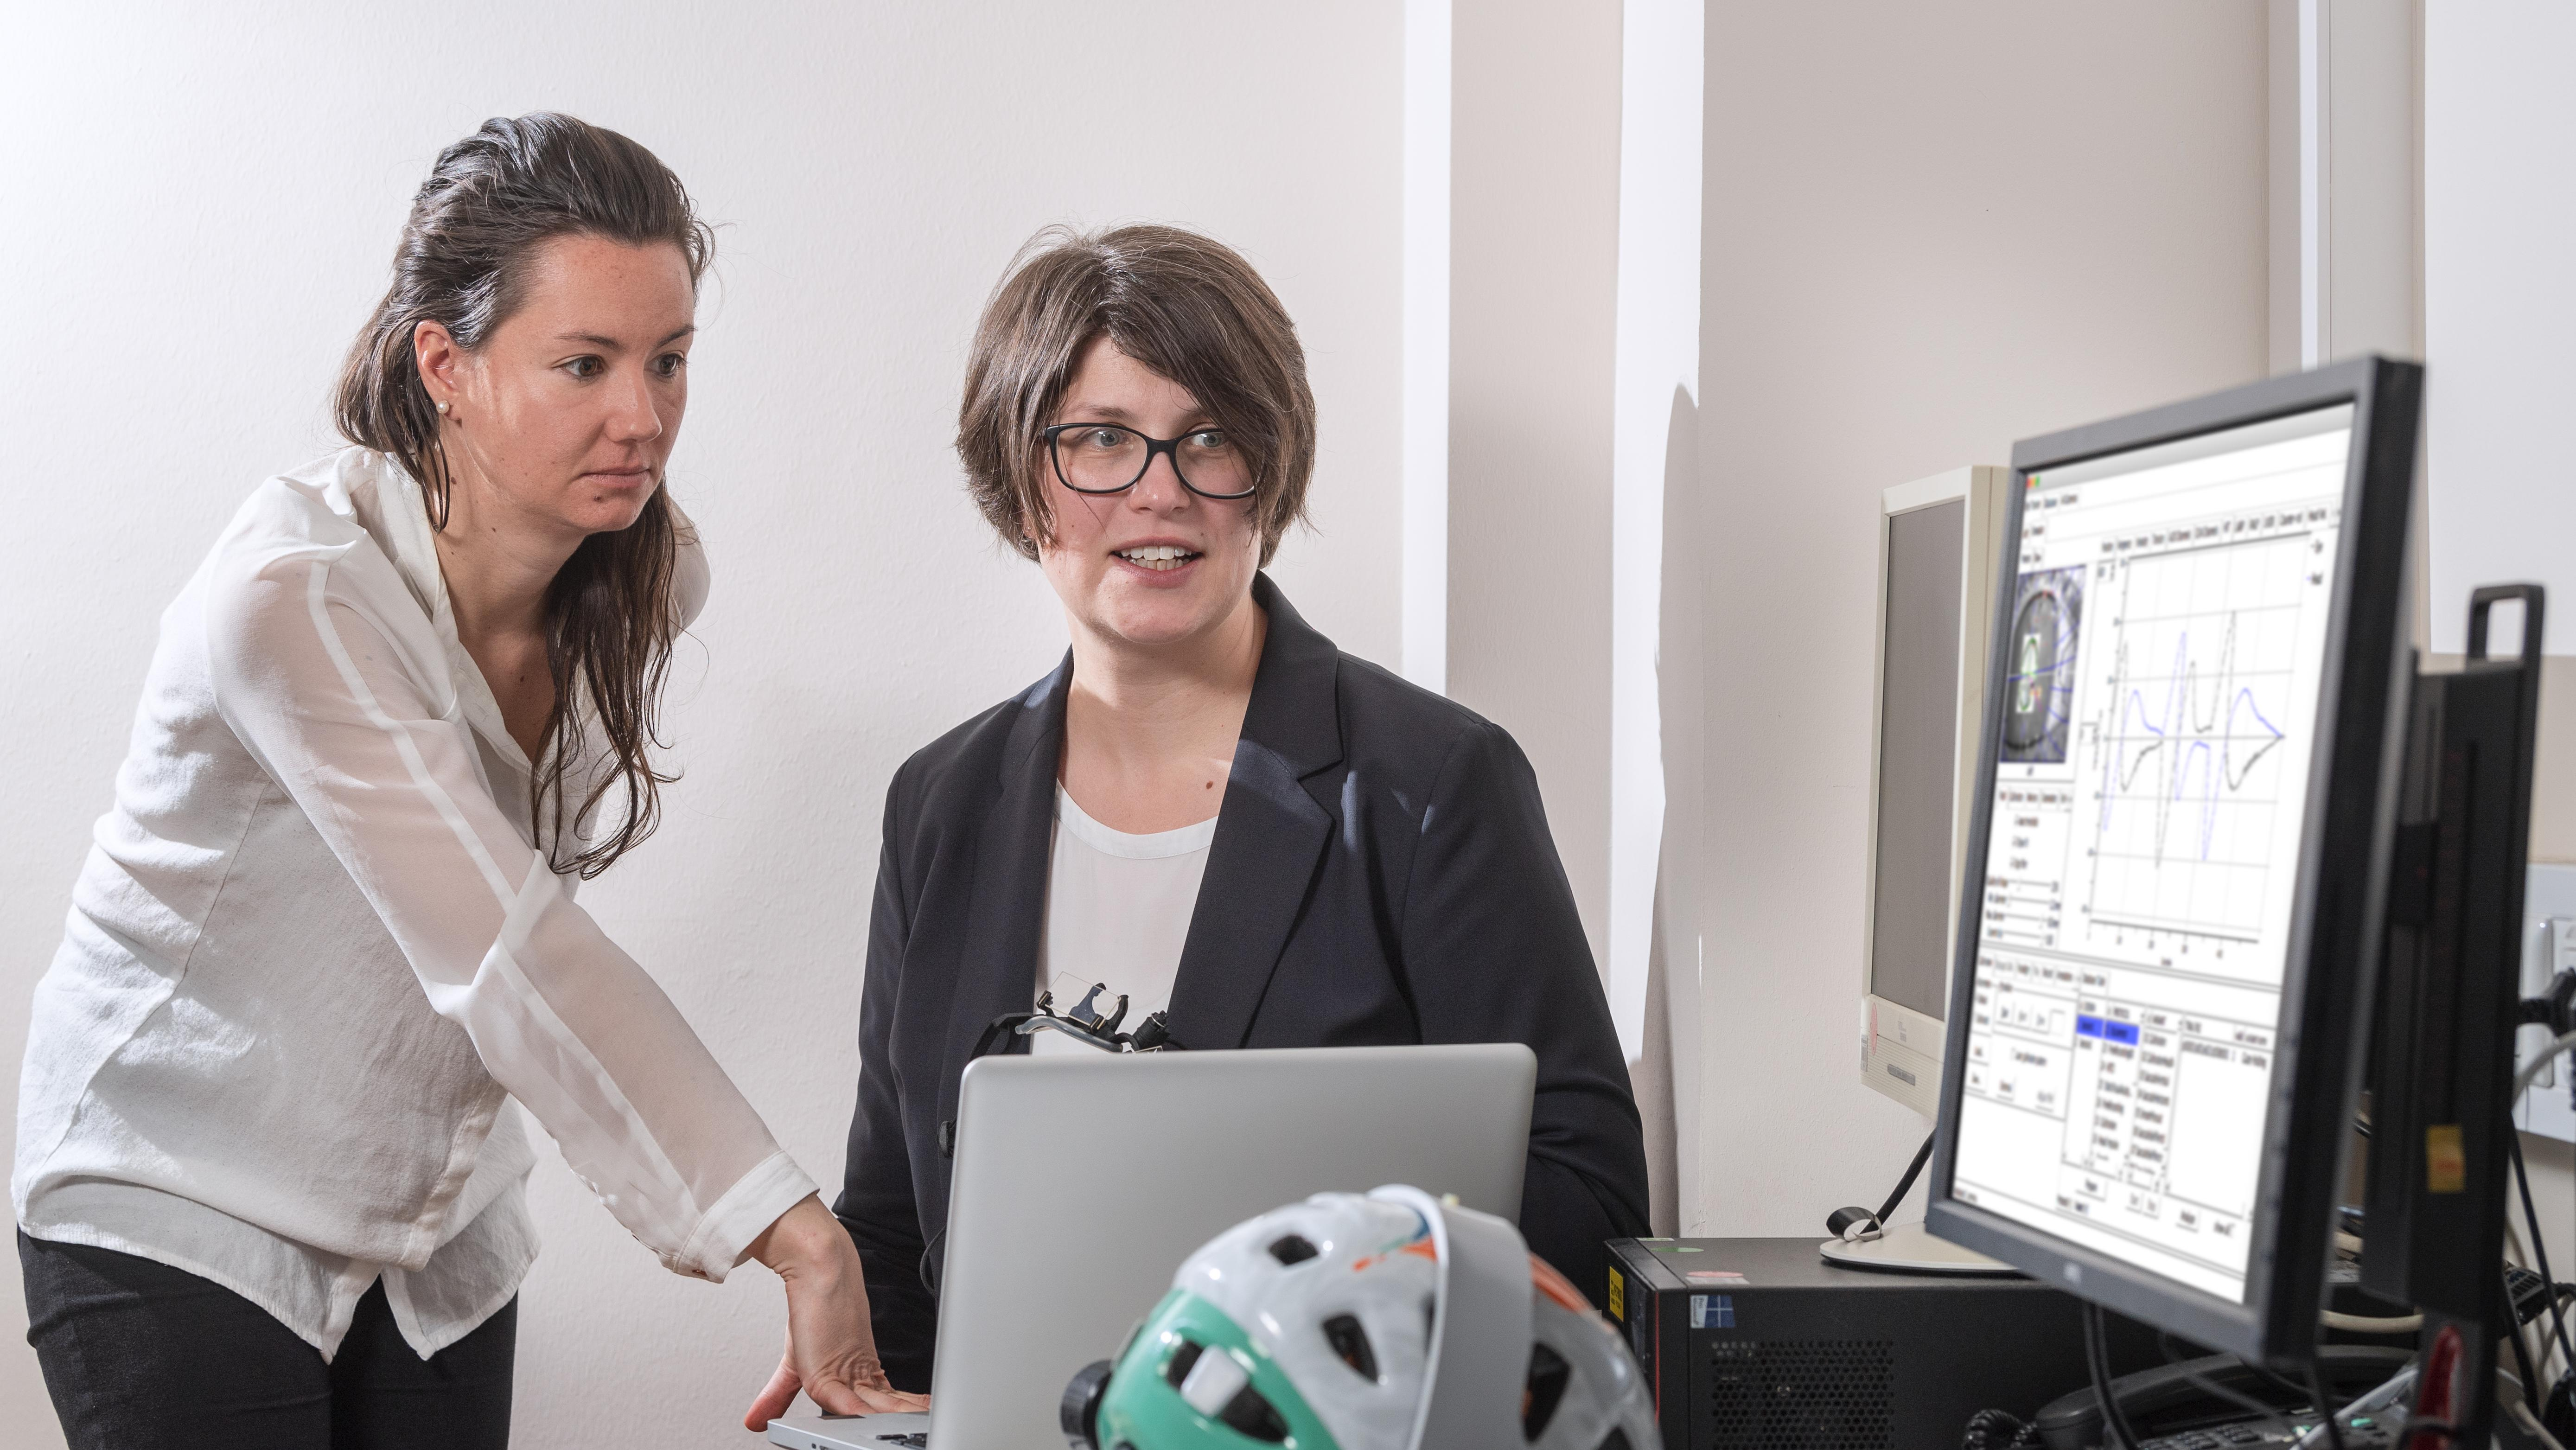 Dr. Cecilia Ramaioli (left) and Prof. Nadine Lehnen discuss results of some measurements in the study about functional dizziness and its causes.